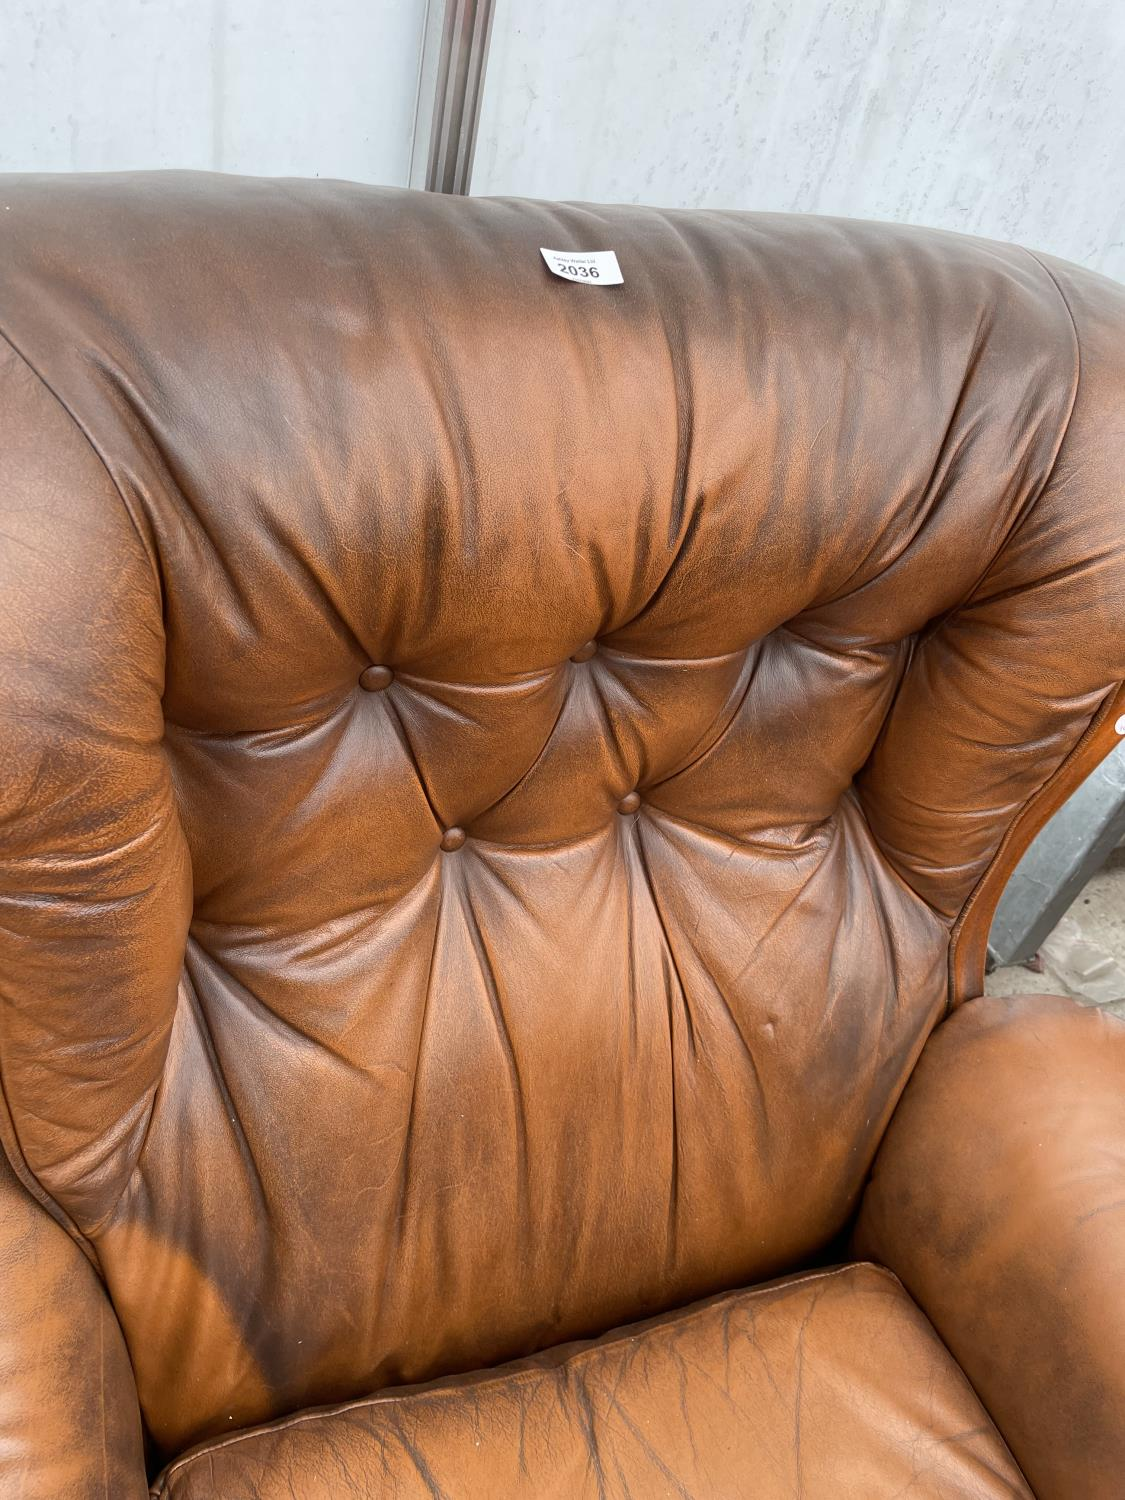 A TWO SEATER SETTEE AND EASY CHAIR BY WORLD OF LEATHER - Image 4 of 7